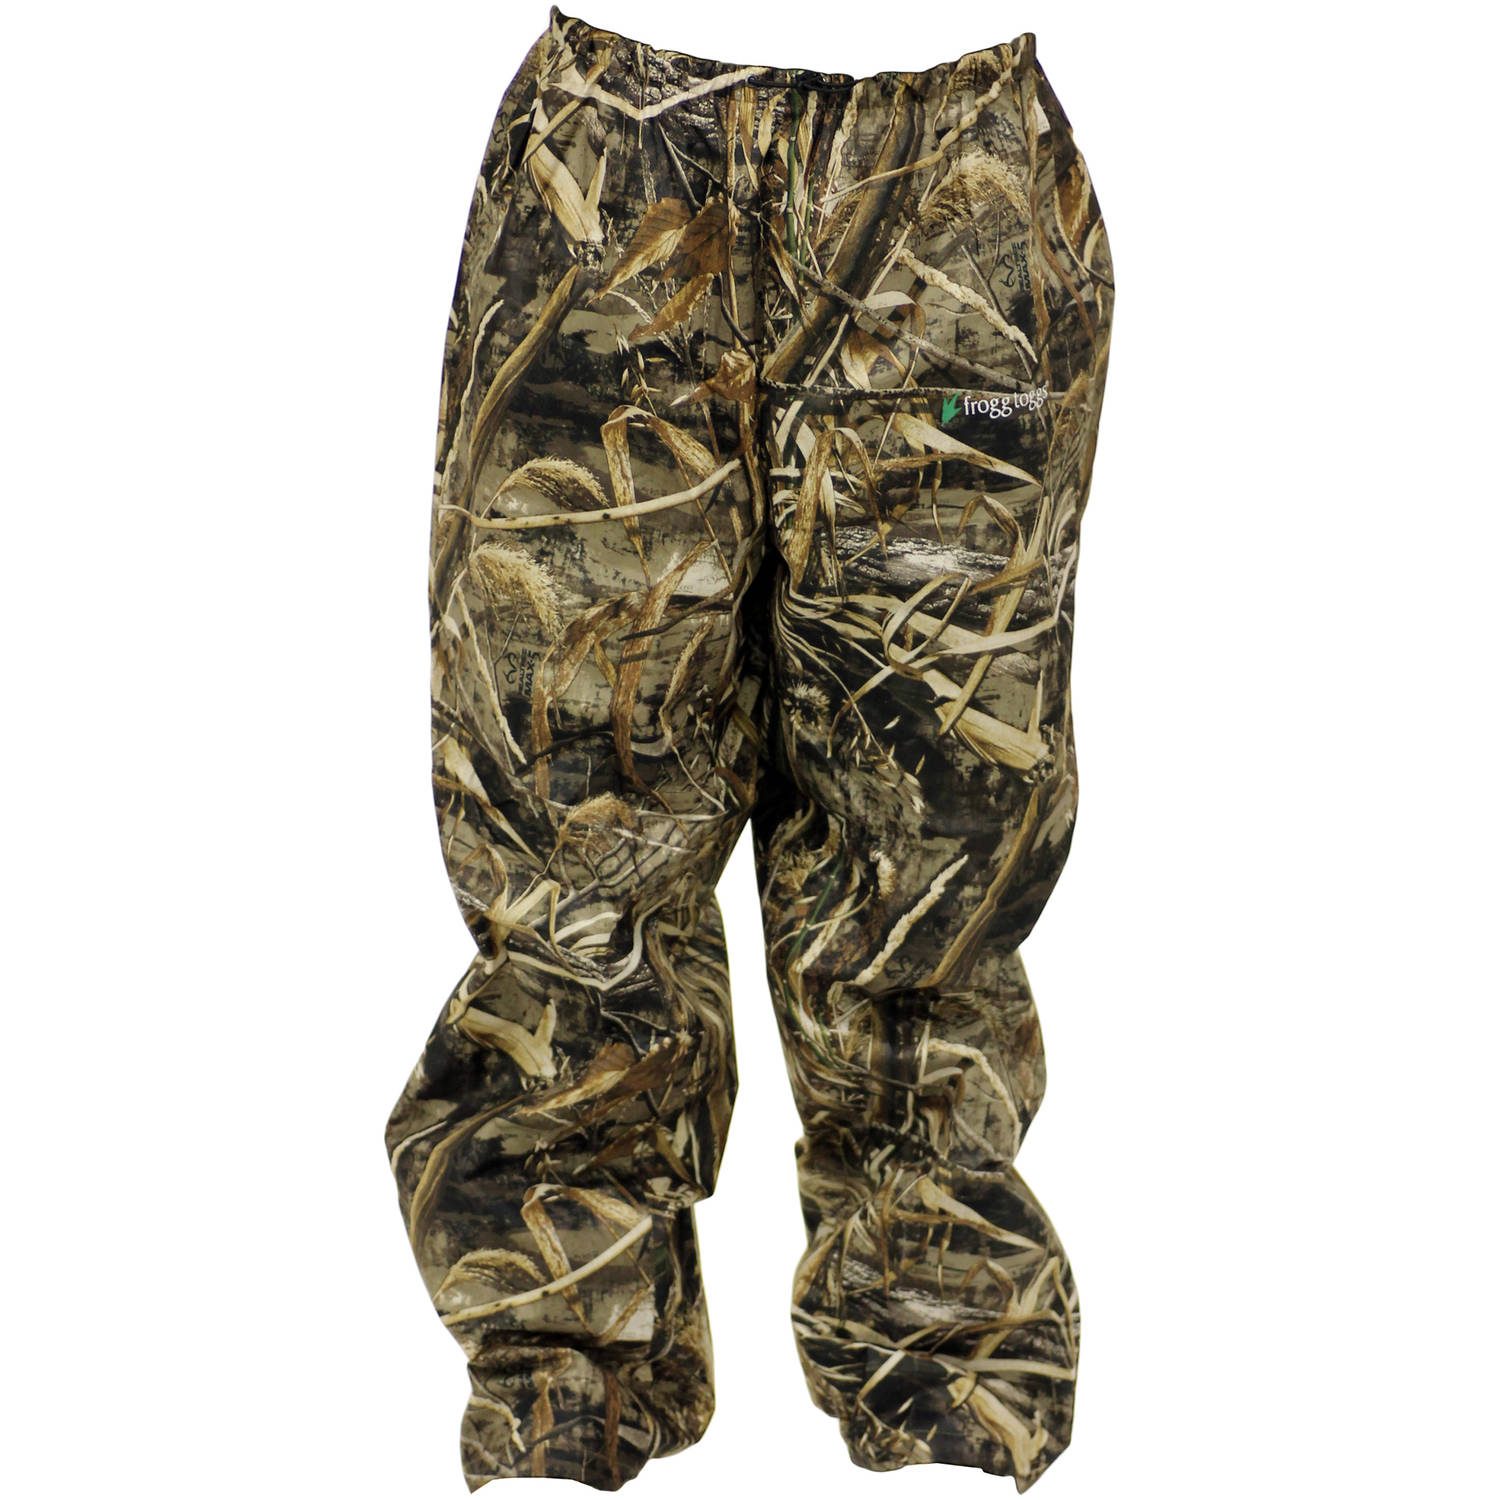 Pro Action Advantage Max 5 Camo Pants